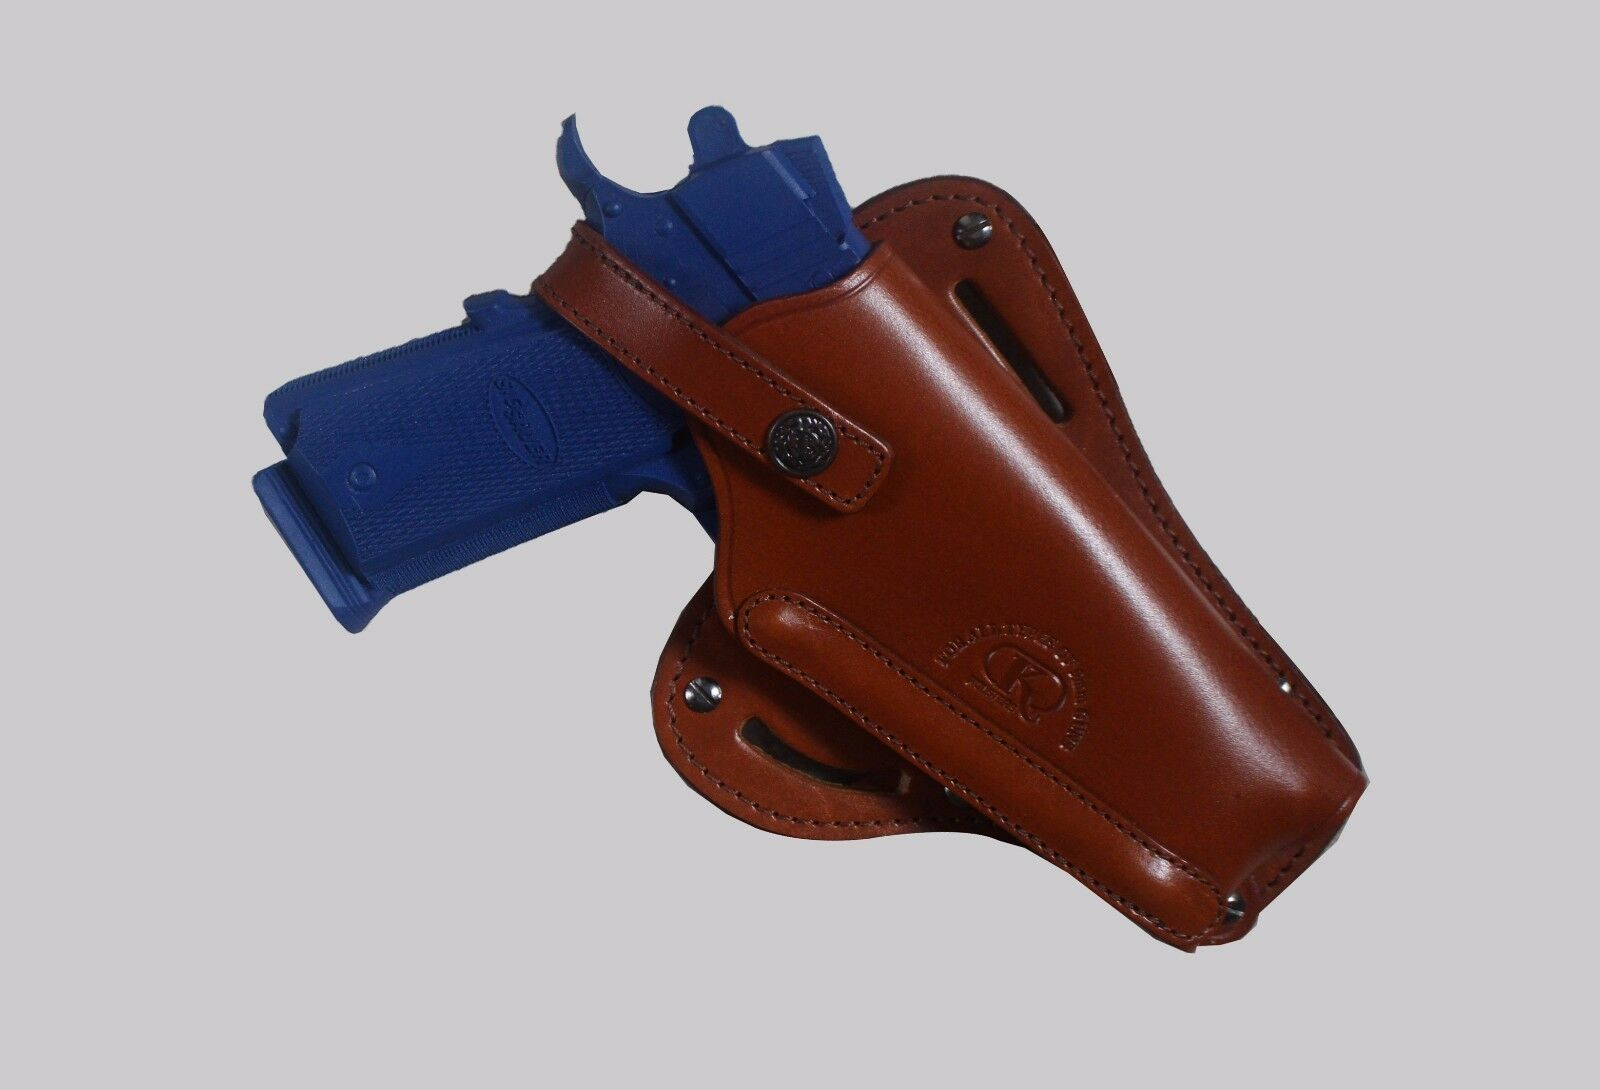 K445-CZ Horizontal & - Vertical Shoulder & Horizontal Belt Holster Fits CZ 75 (3in1) ce90a4